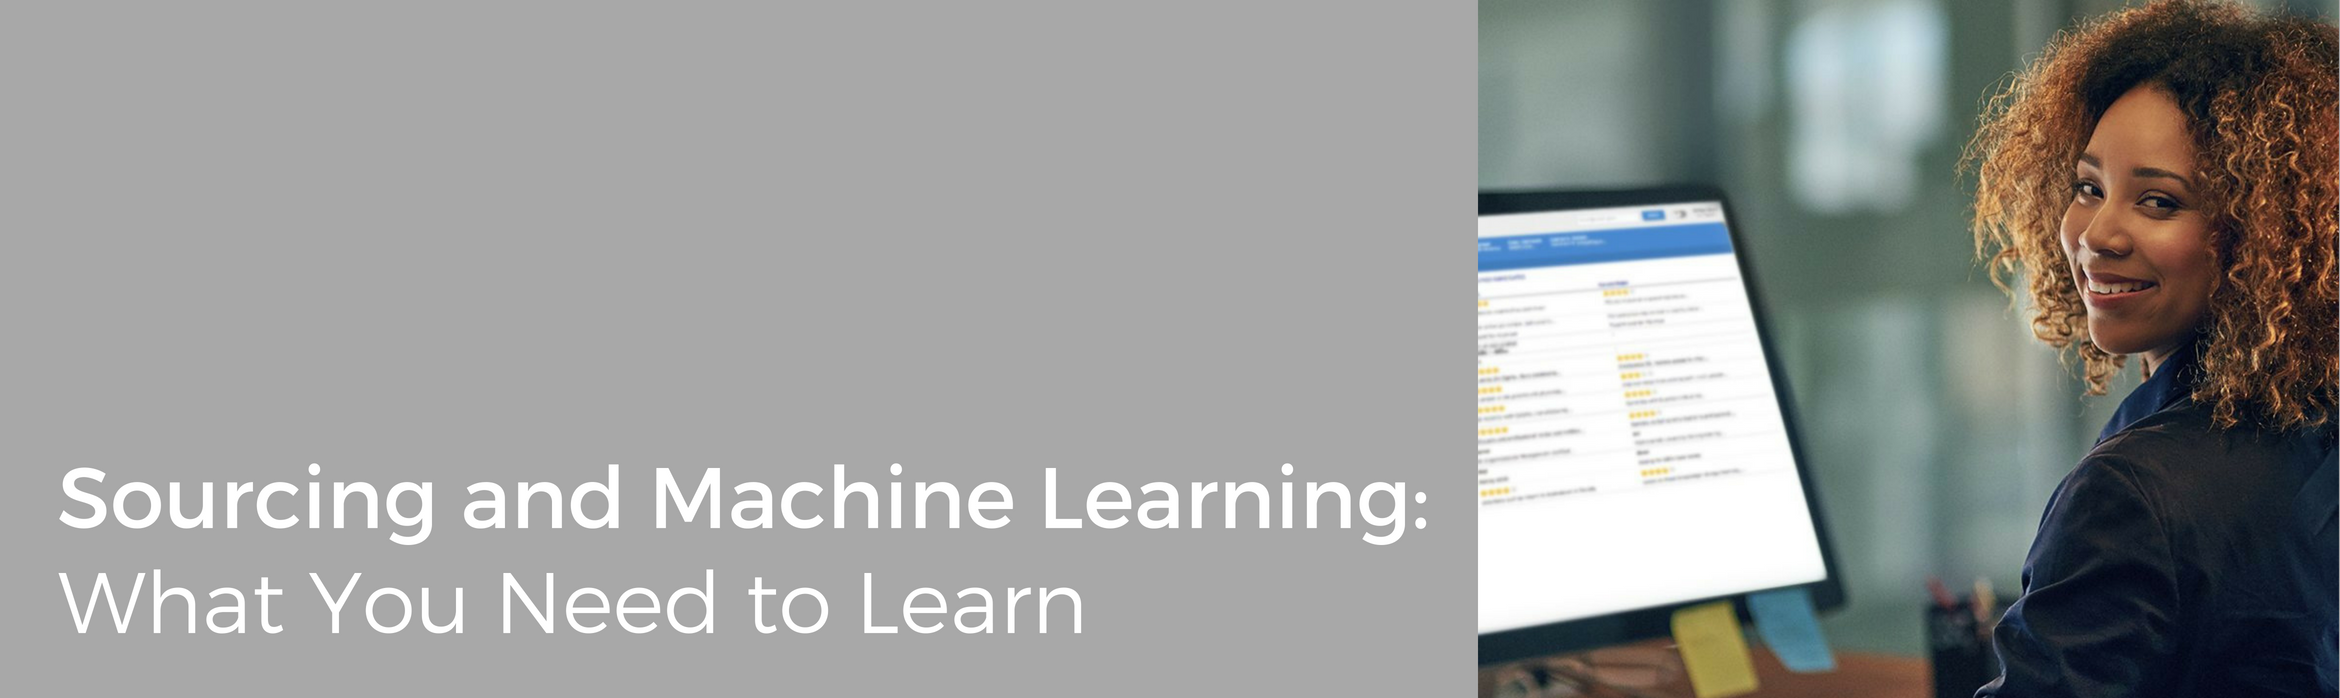 Sourcing and Machine Learning: What You Need to Learn